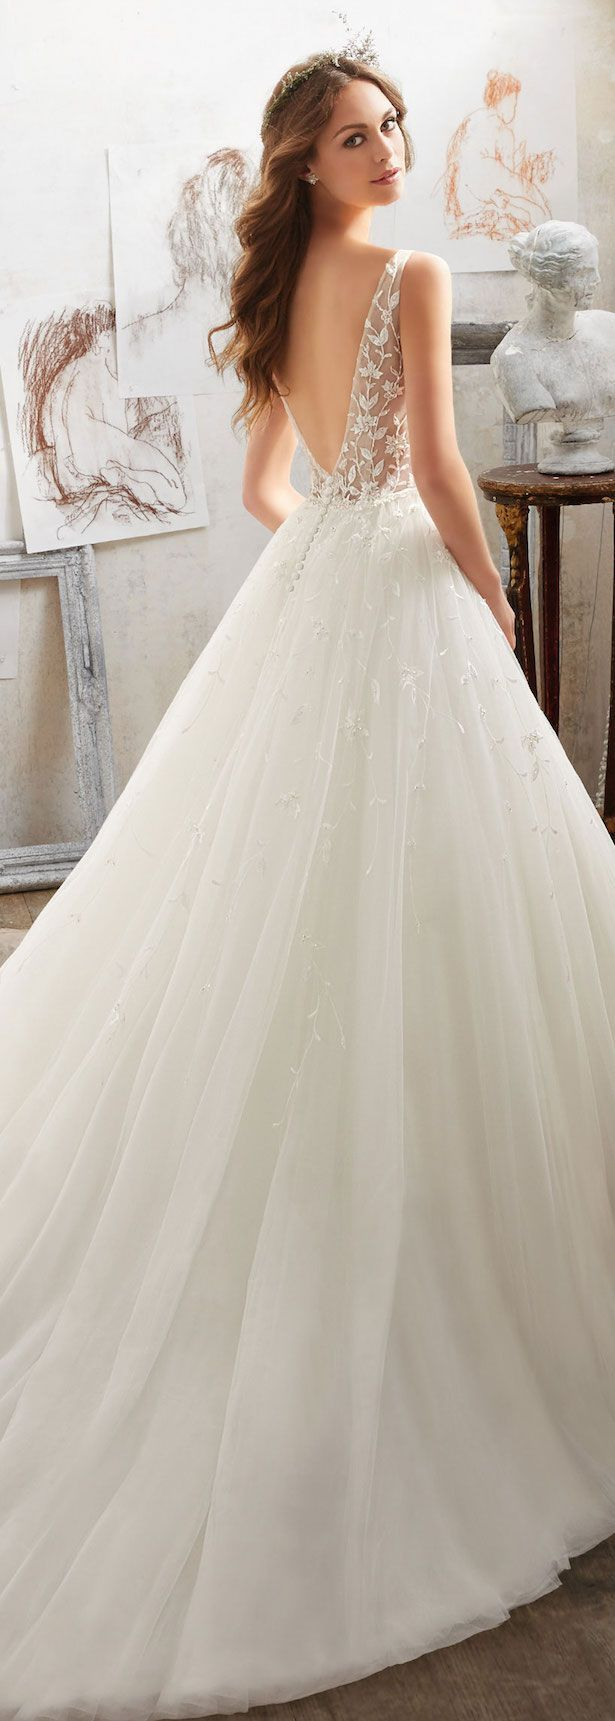 Mori Lee by Madeline Gardner Wedding Dress Collection  Blu Spring